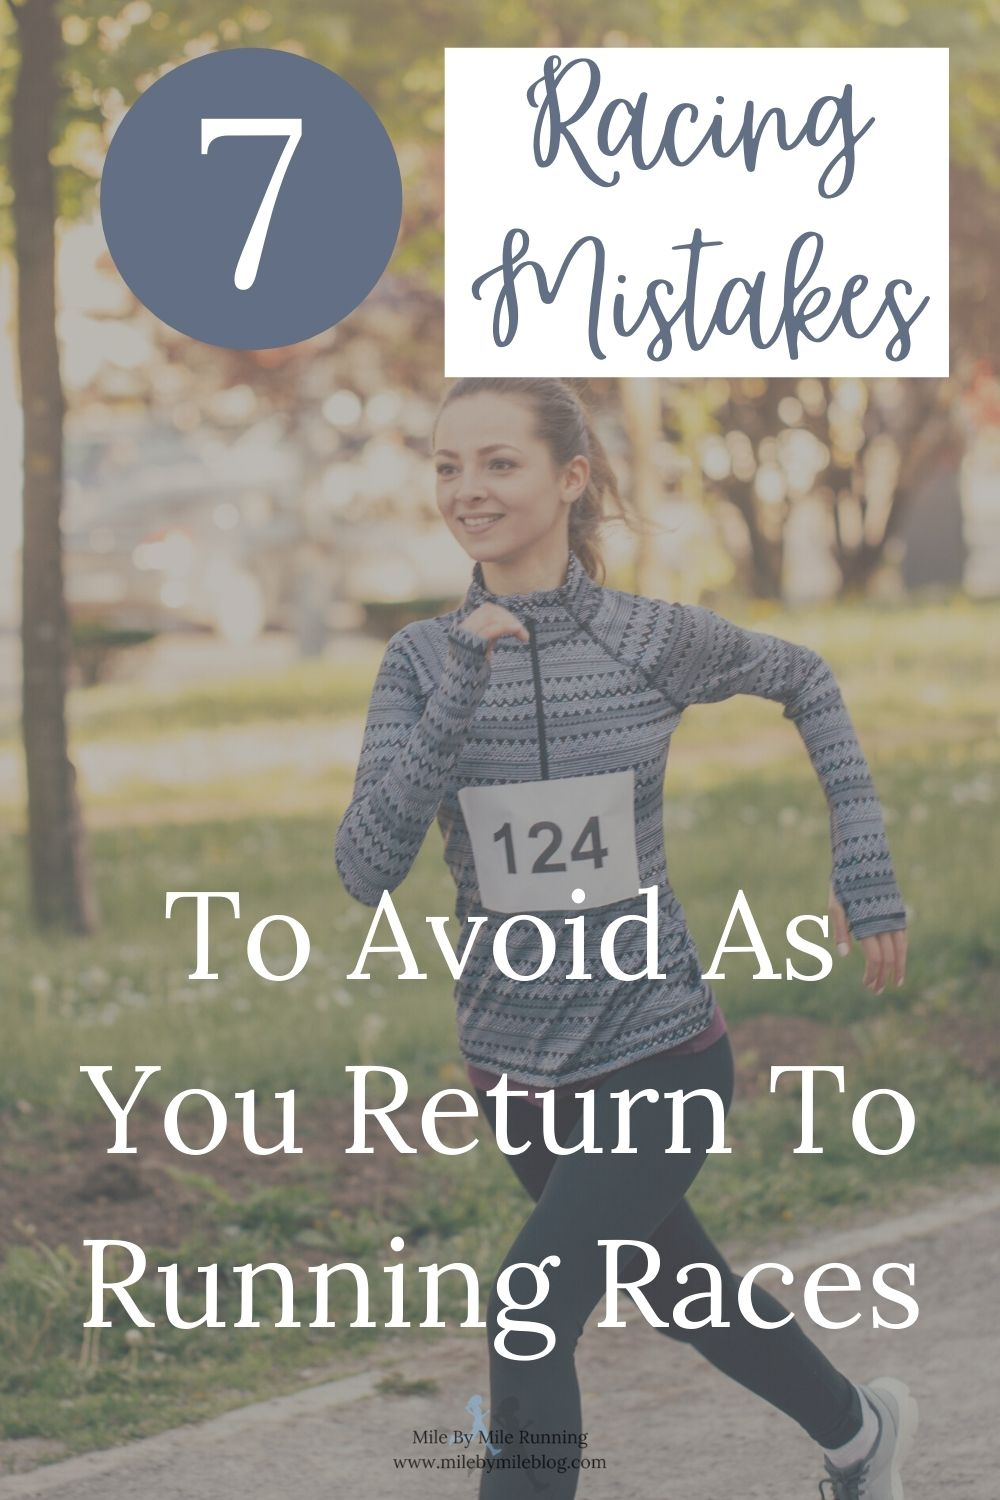 As many of us are returning to racing for the first time in over a year, it may be hard to remember all the things we should and shouldn't do during a race. Good thing I wrote this post back when I was racing more! If you're getting back into racing, make sure you avoid these racing mistakes. They're all pretty common but also avoidable! Here are the top 8 mistakes to avoid at your next race.